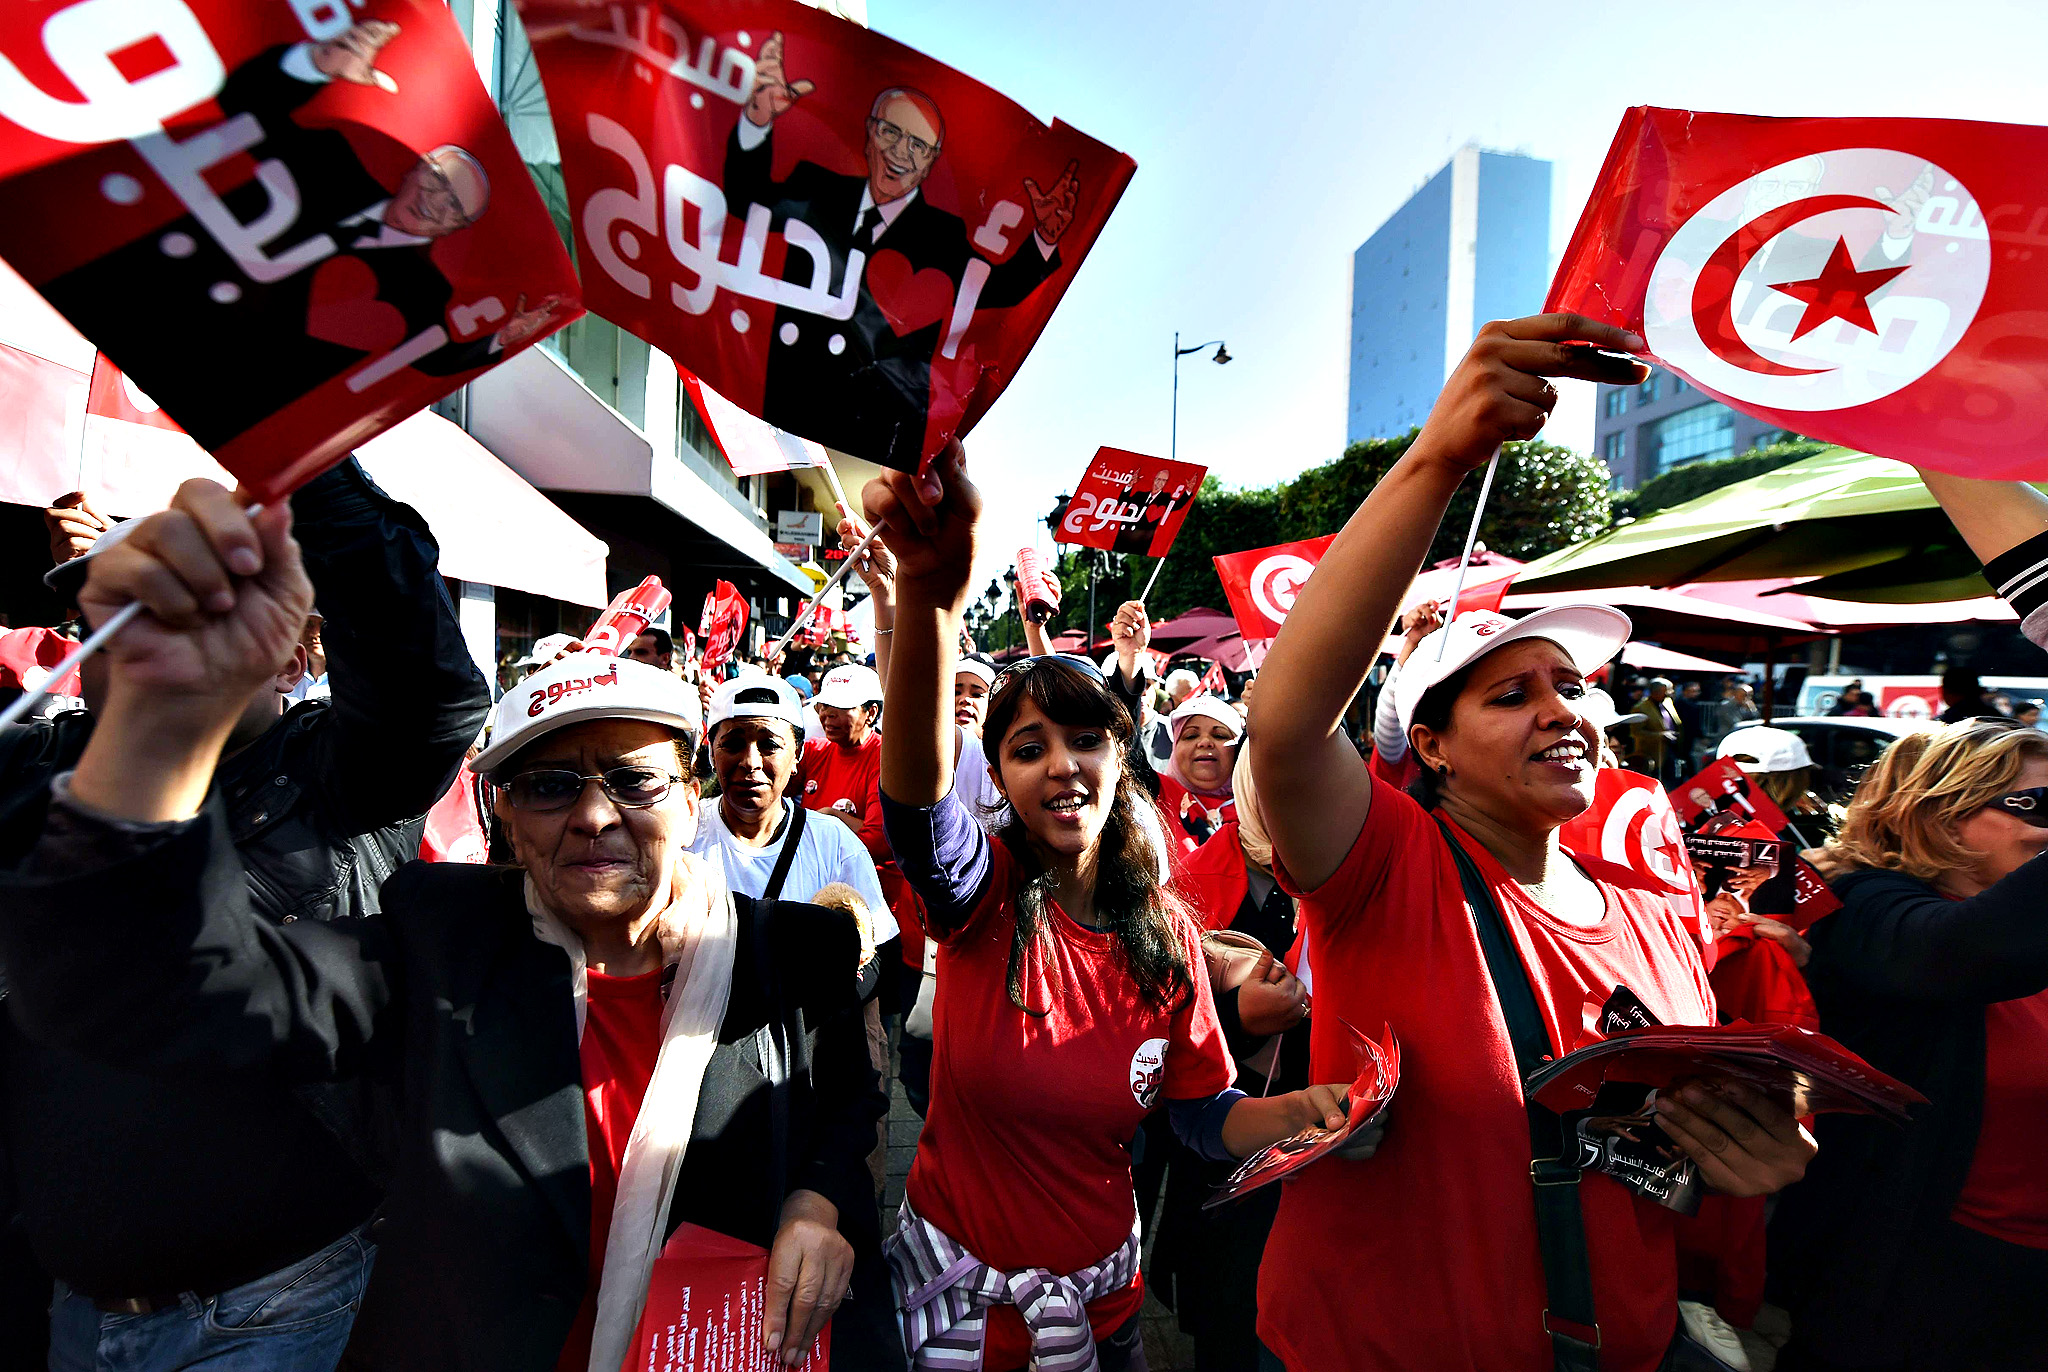 Supporters of Tunisian Presidential candidate Beji Caid Essebsi, shout slogans and wave flags on Bourguiba avenue during an election campaign in the capital, Tunis, on November 21, 2014, ahead of the upcoming presidential elections on November 23. Secularist Essebsi is seen as the frontrunner for the elections after his party won milestone parliamentary polls.